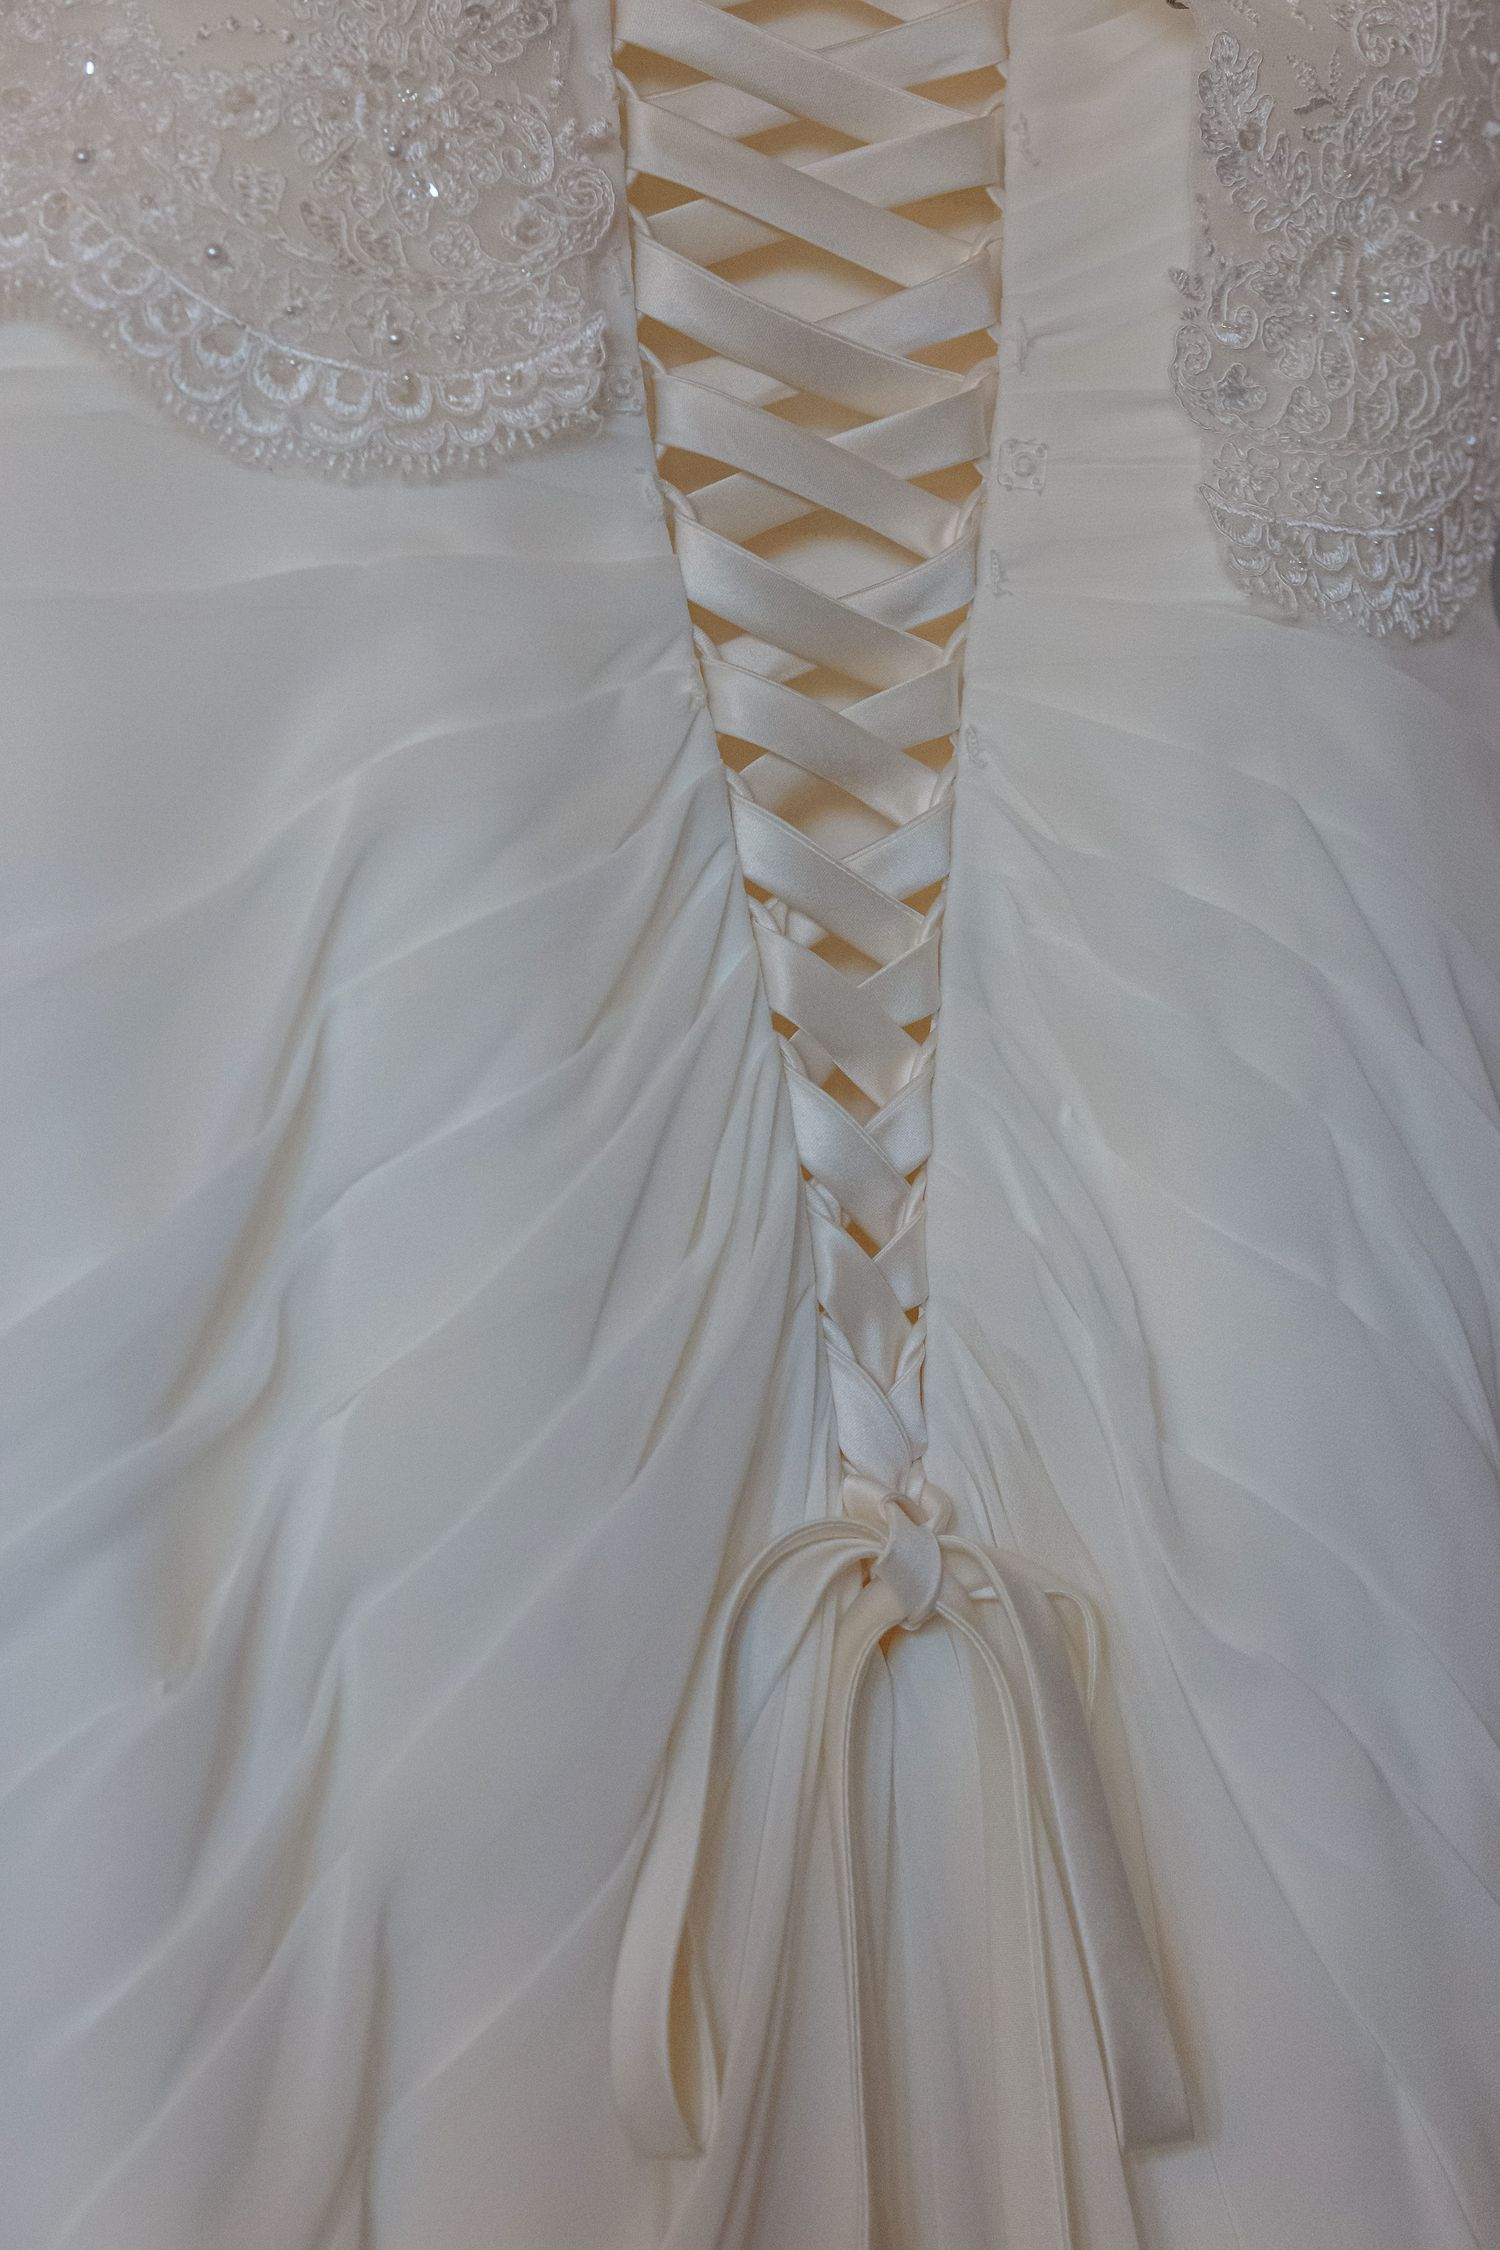 detail shot of the lacing on the back of the brides dress